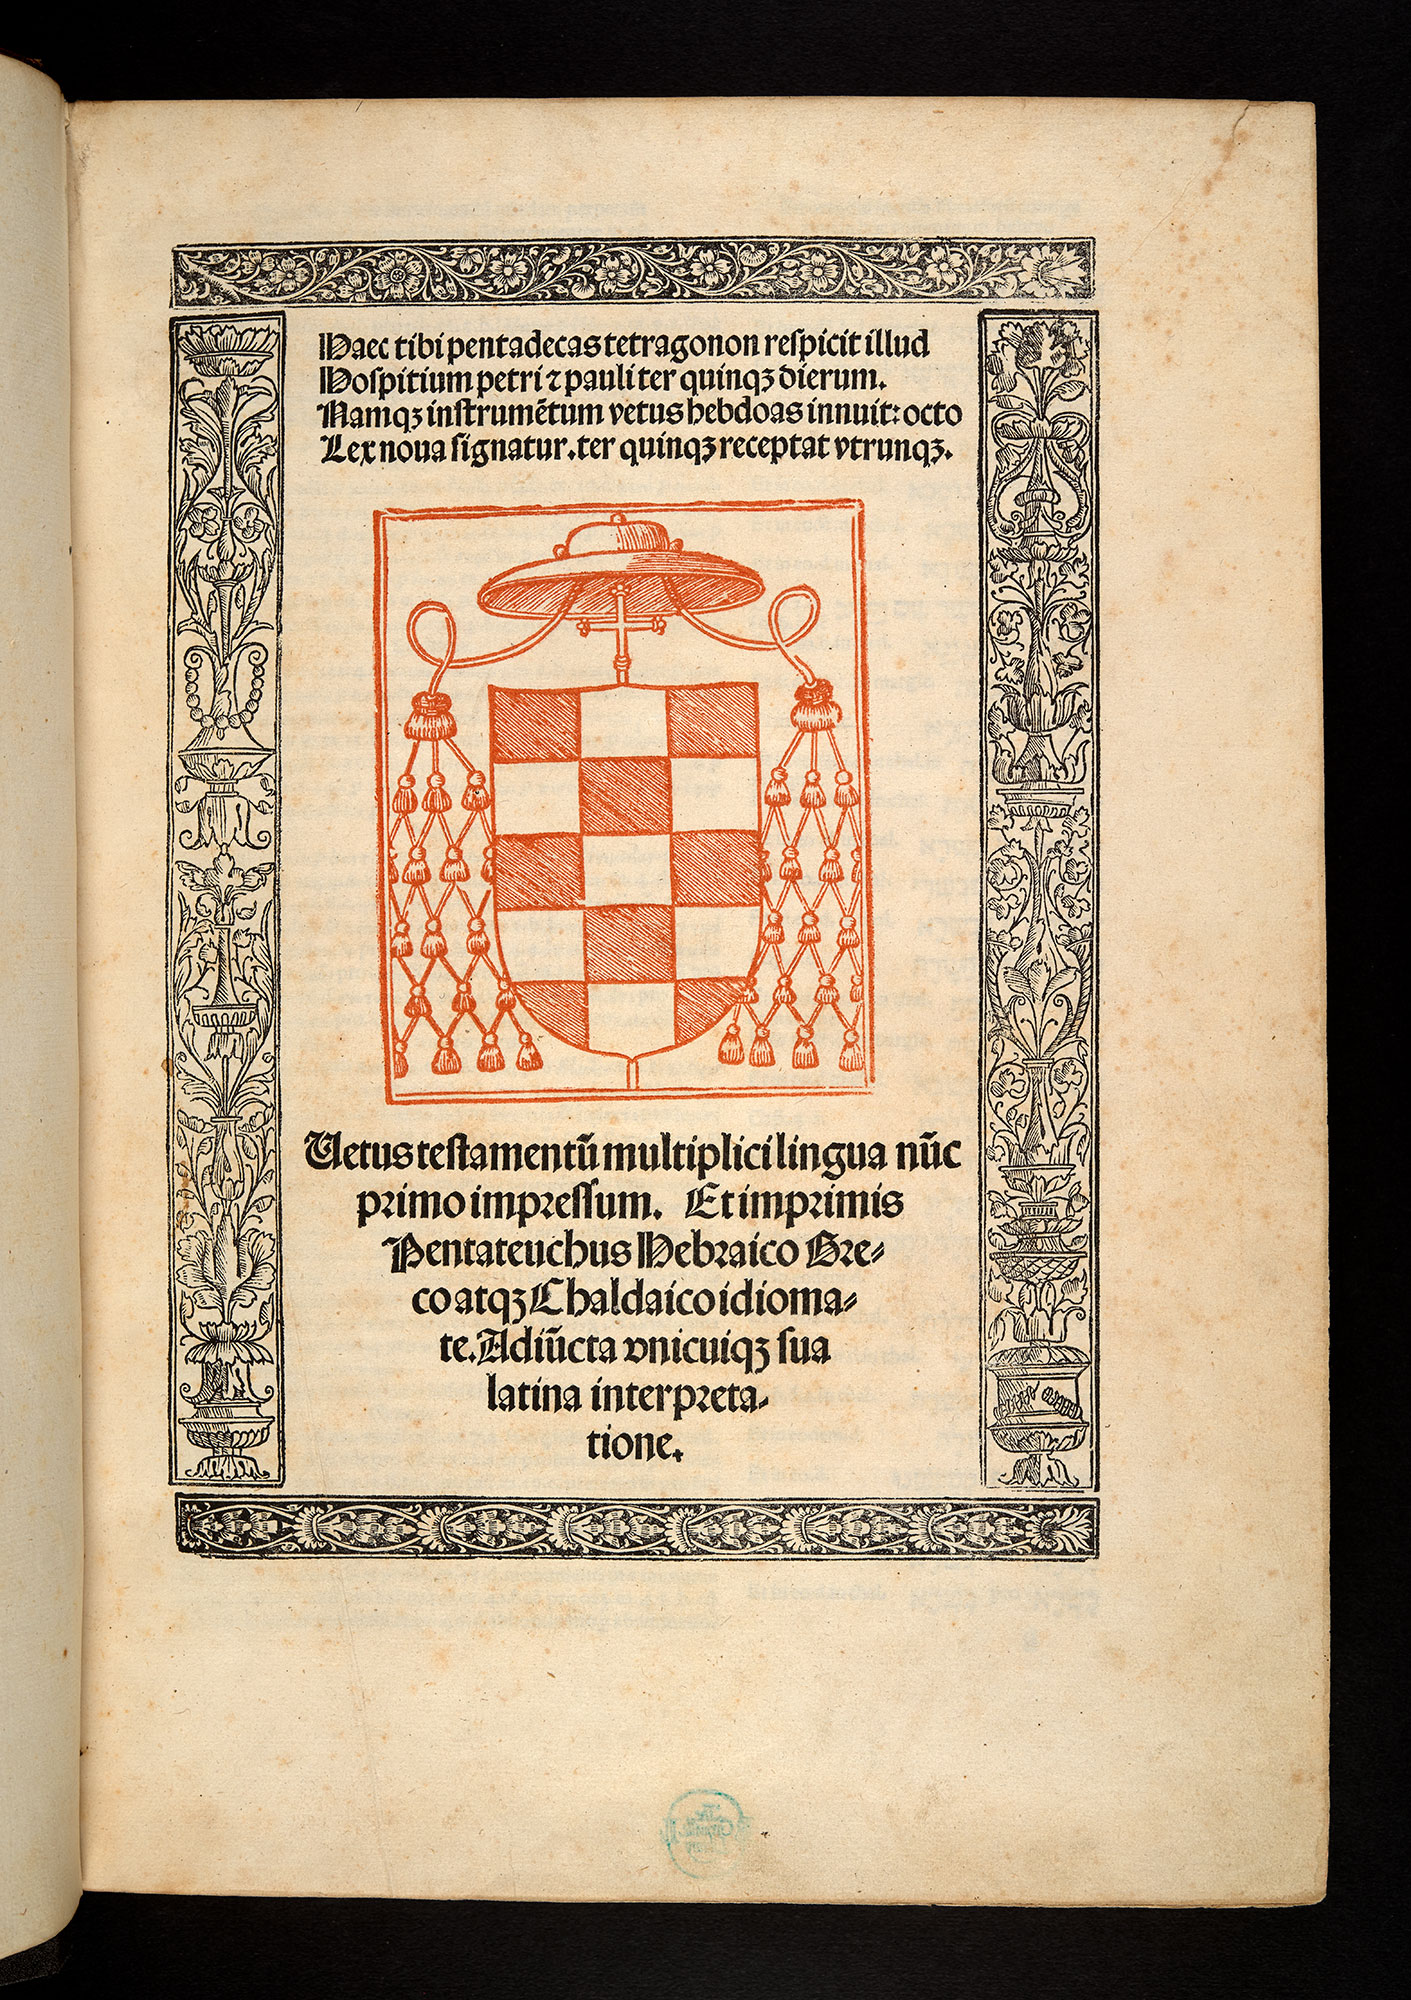 Title page of volume one of the so-called 'Complutensian Polyglot Bible'. There page features a coat-of-arms in red and floral border in black ink